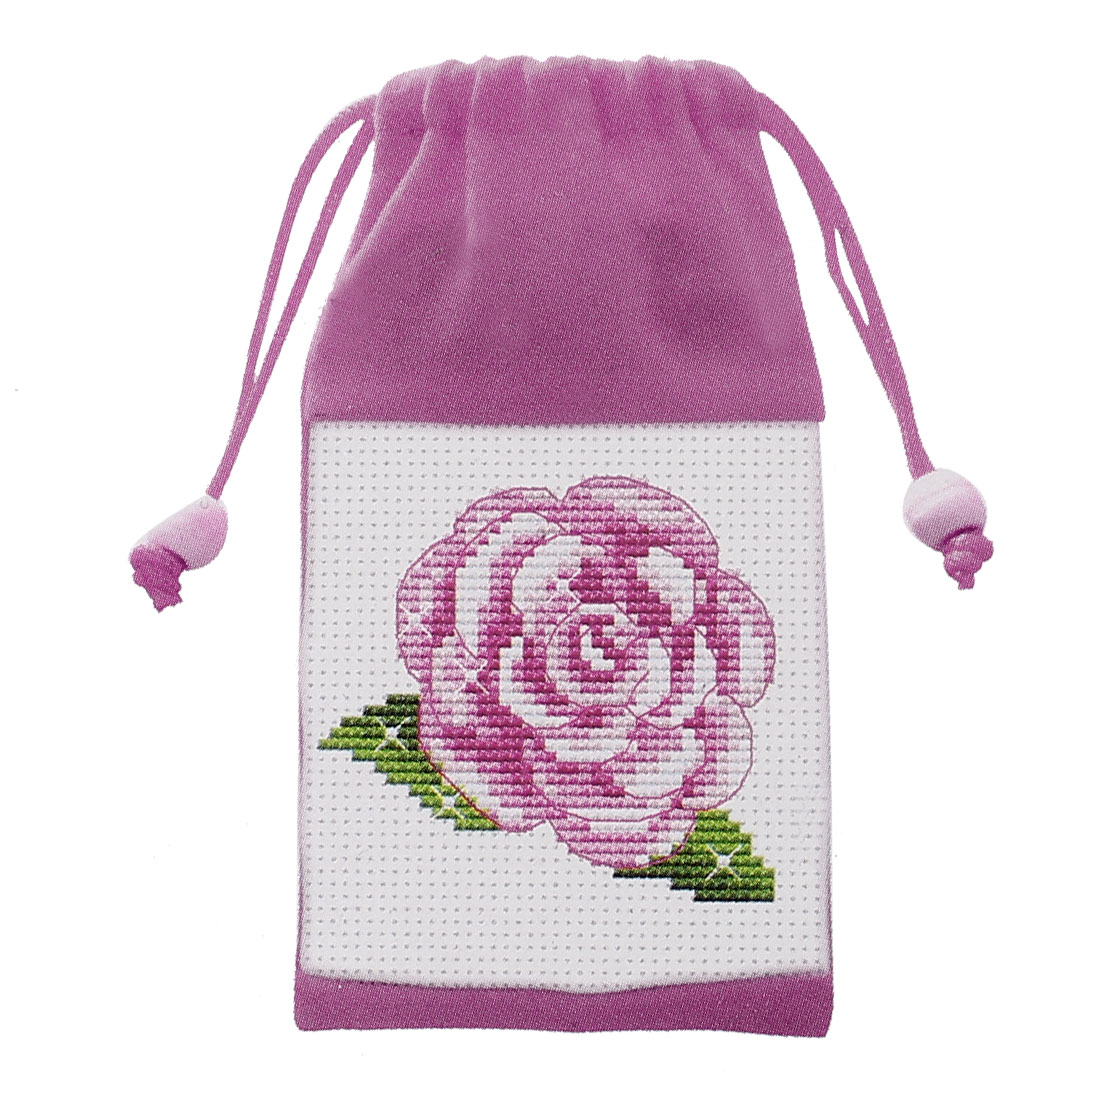 Rose Floral Print Pull String Phone Bag Holder Cross Stitch Counted Handmade Kit